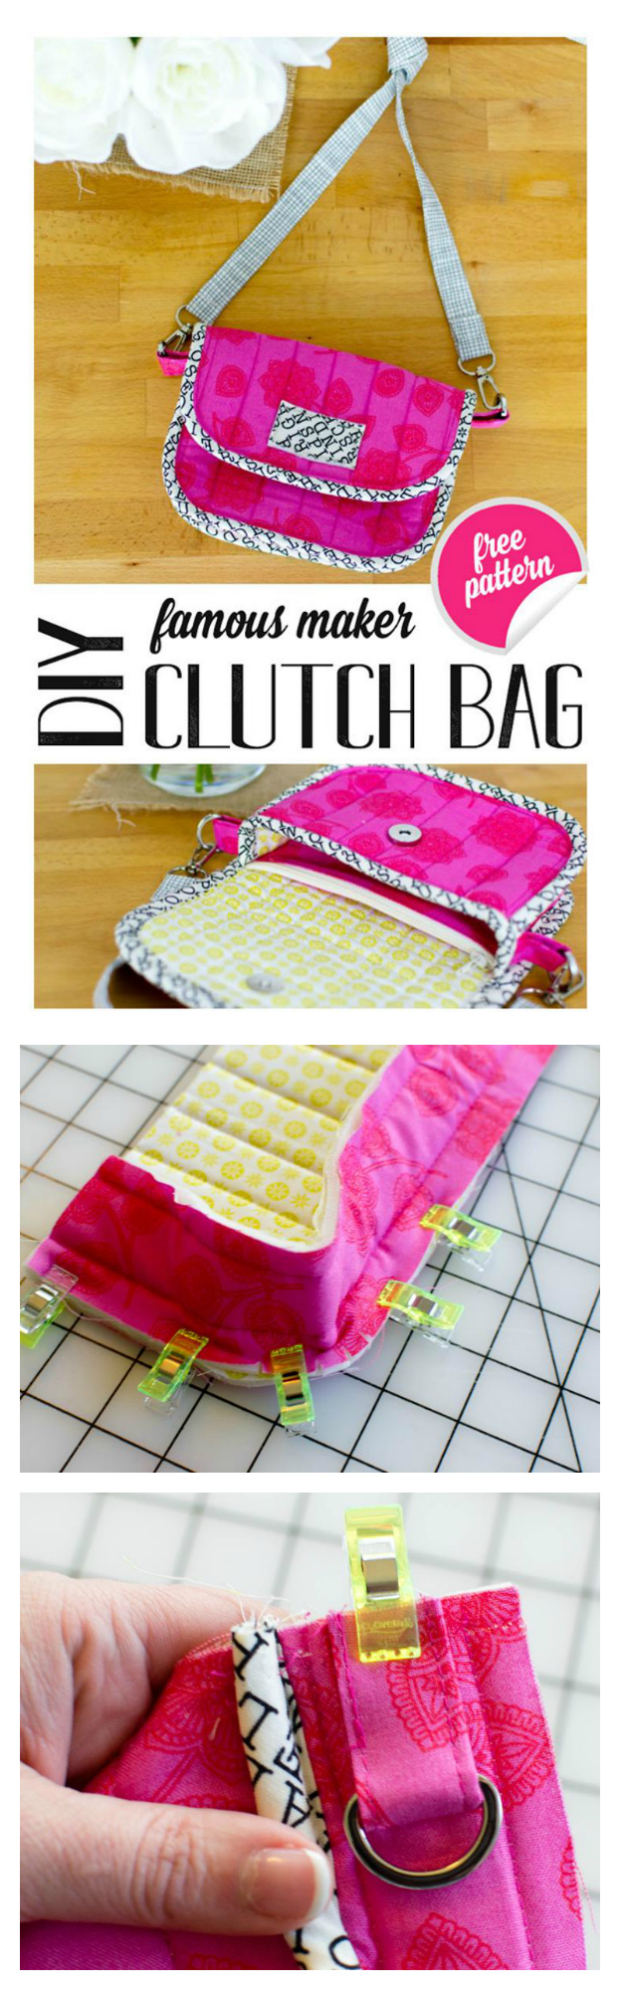 "Here is yet another FREE pdf pattern brought to you by Sew Modern Bags. This one is a little clutch bag pattern, which has a zipper pouch inside this little bag. You can fit an iPhone in the little pocket behind the integrated zipper pouch, and then you'll have a nice sized compartment in front of the zipper pouch for keys, lip gloss and a little notebook. If you want your clutch bag can also carry cards and cash in the zipper pouch. The approximate size of the finished bag will be 7'"" wide by 4 1/2"" tall."